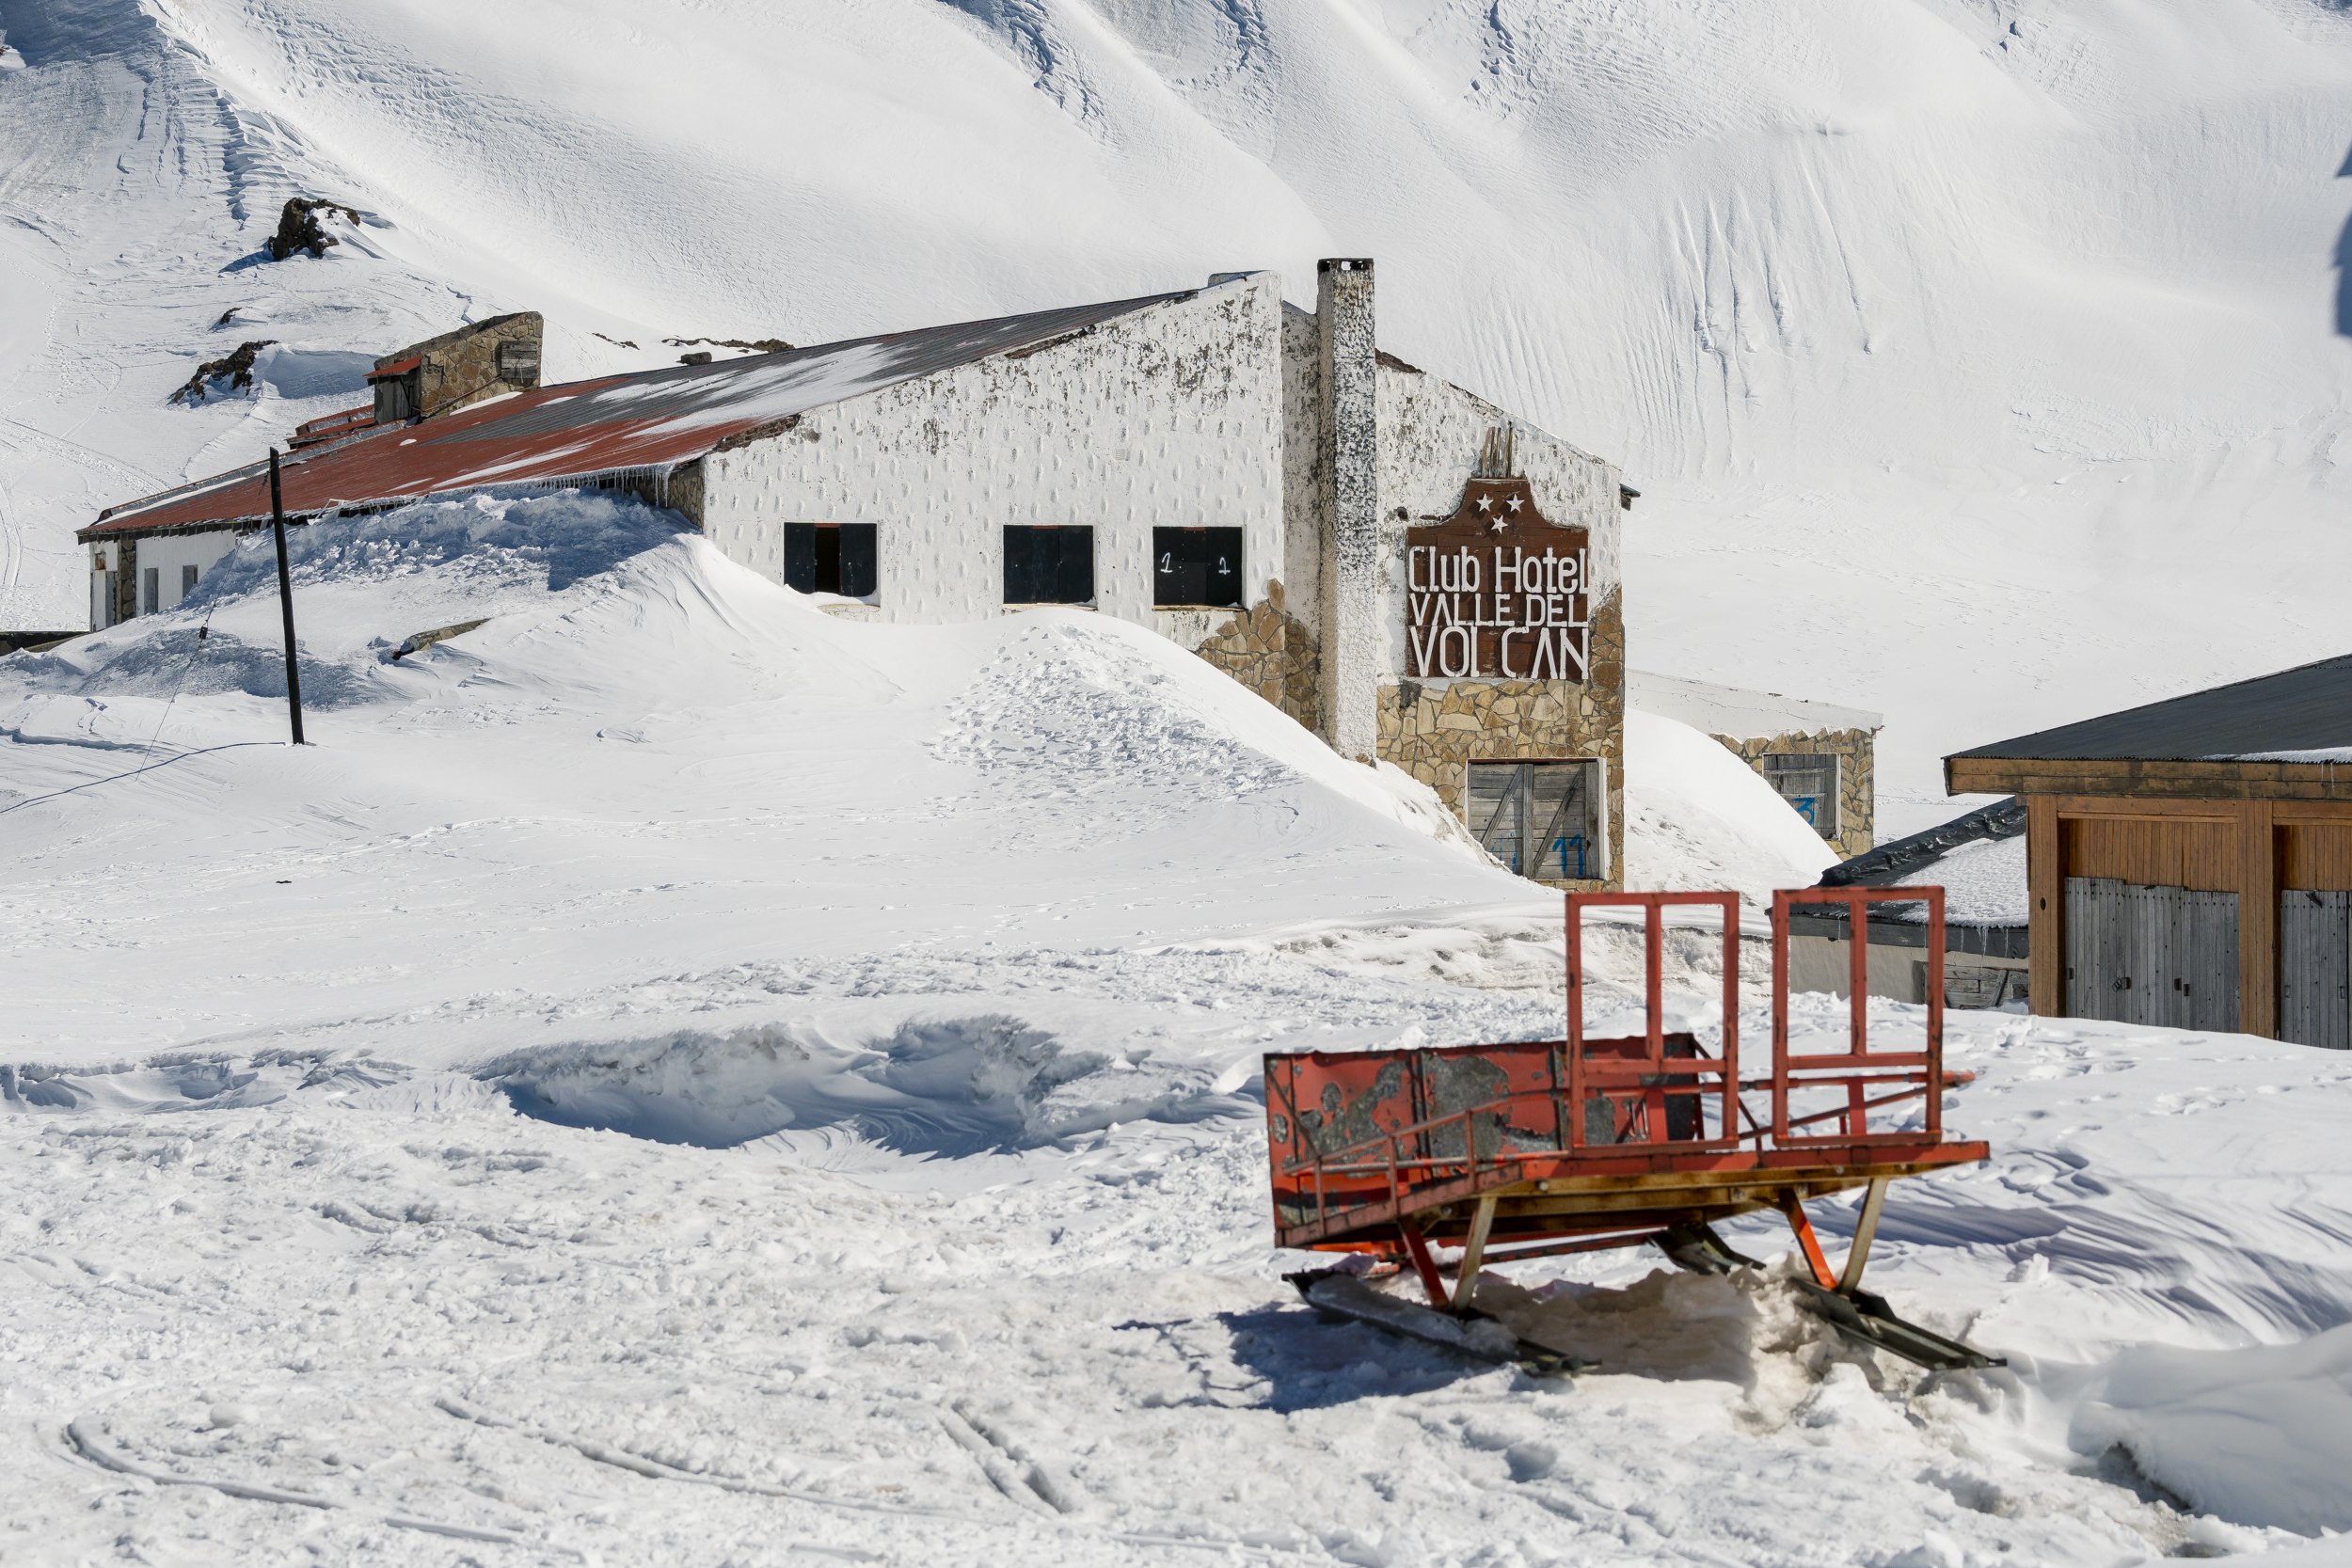 The Town of Copahue is dormant in the winter